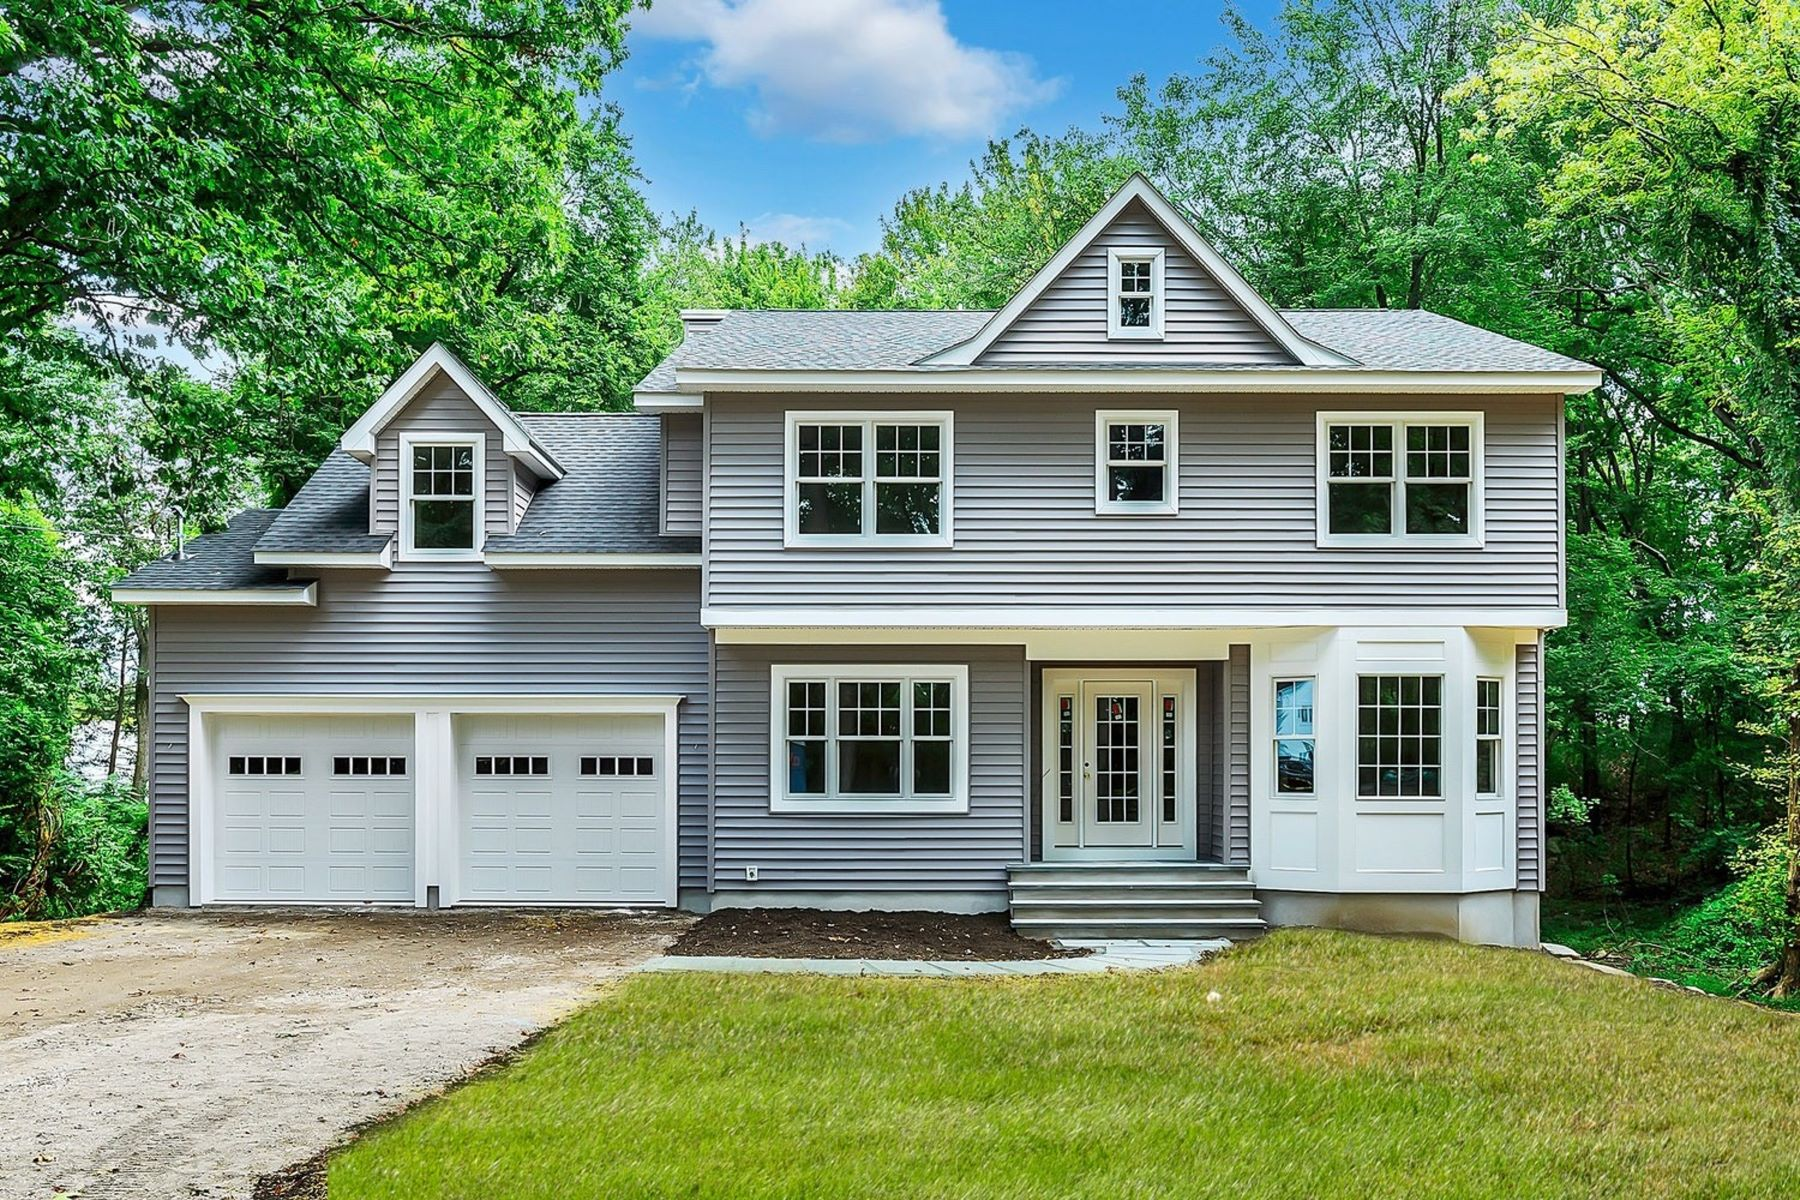 Single Family Homes for Active at Rare Opportunity New Construction 8 Rainbow Trail Mountain Lakes, New Jersey 07046 United States